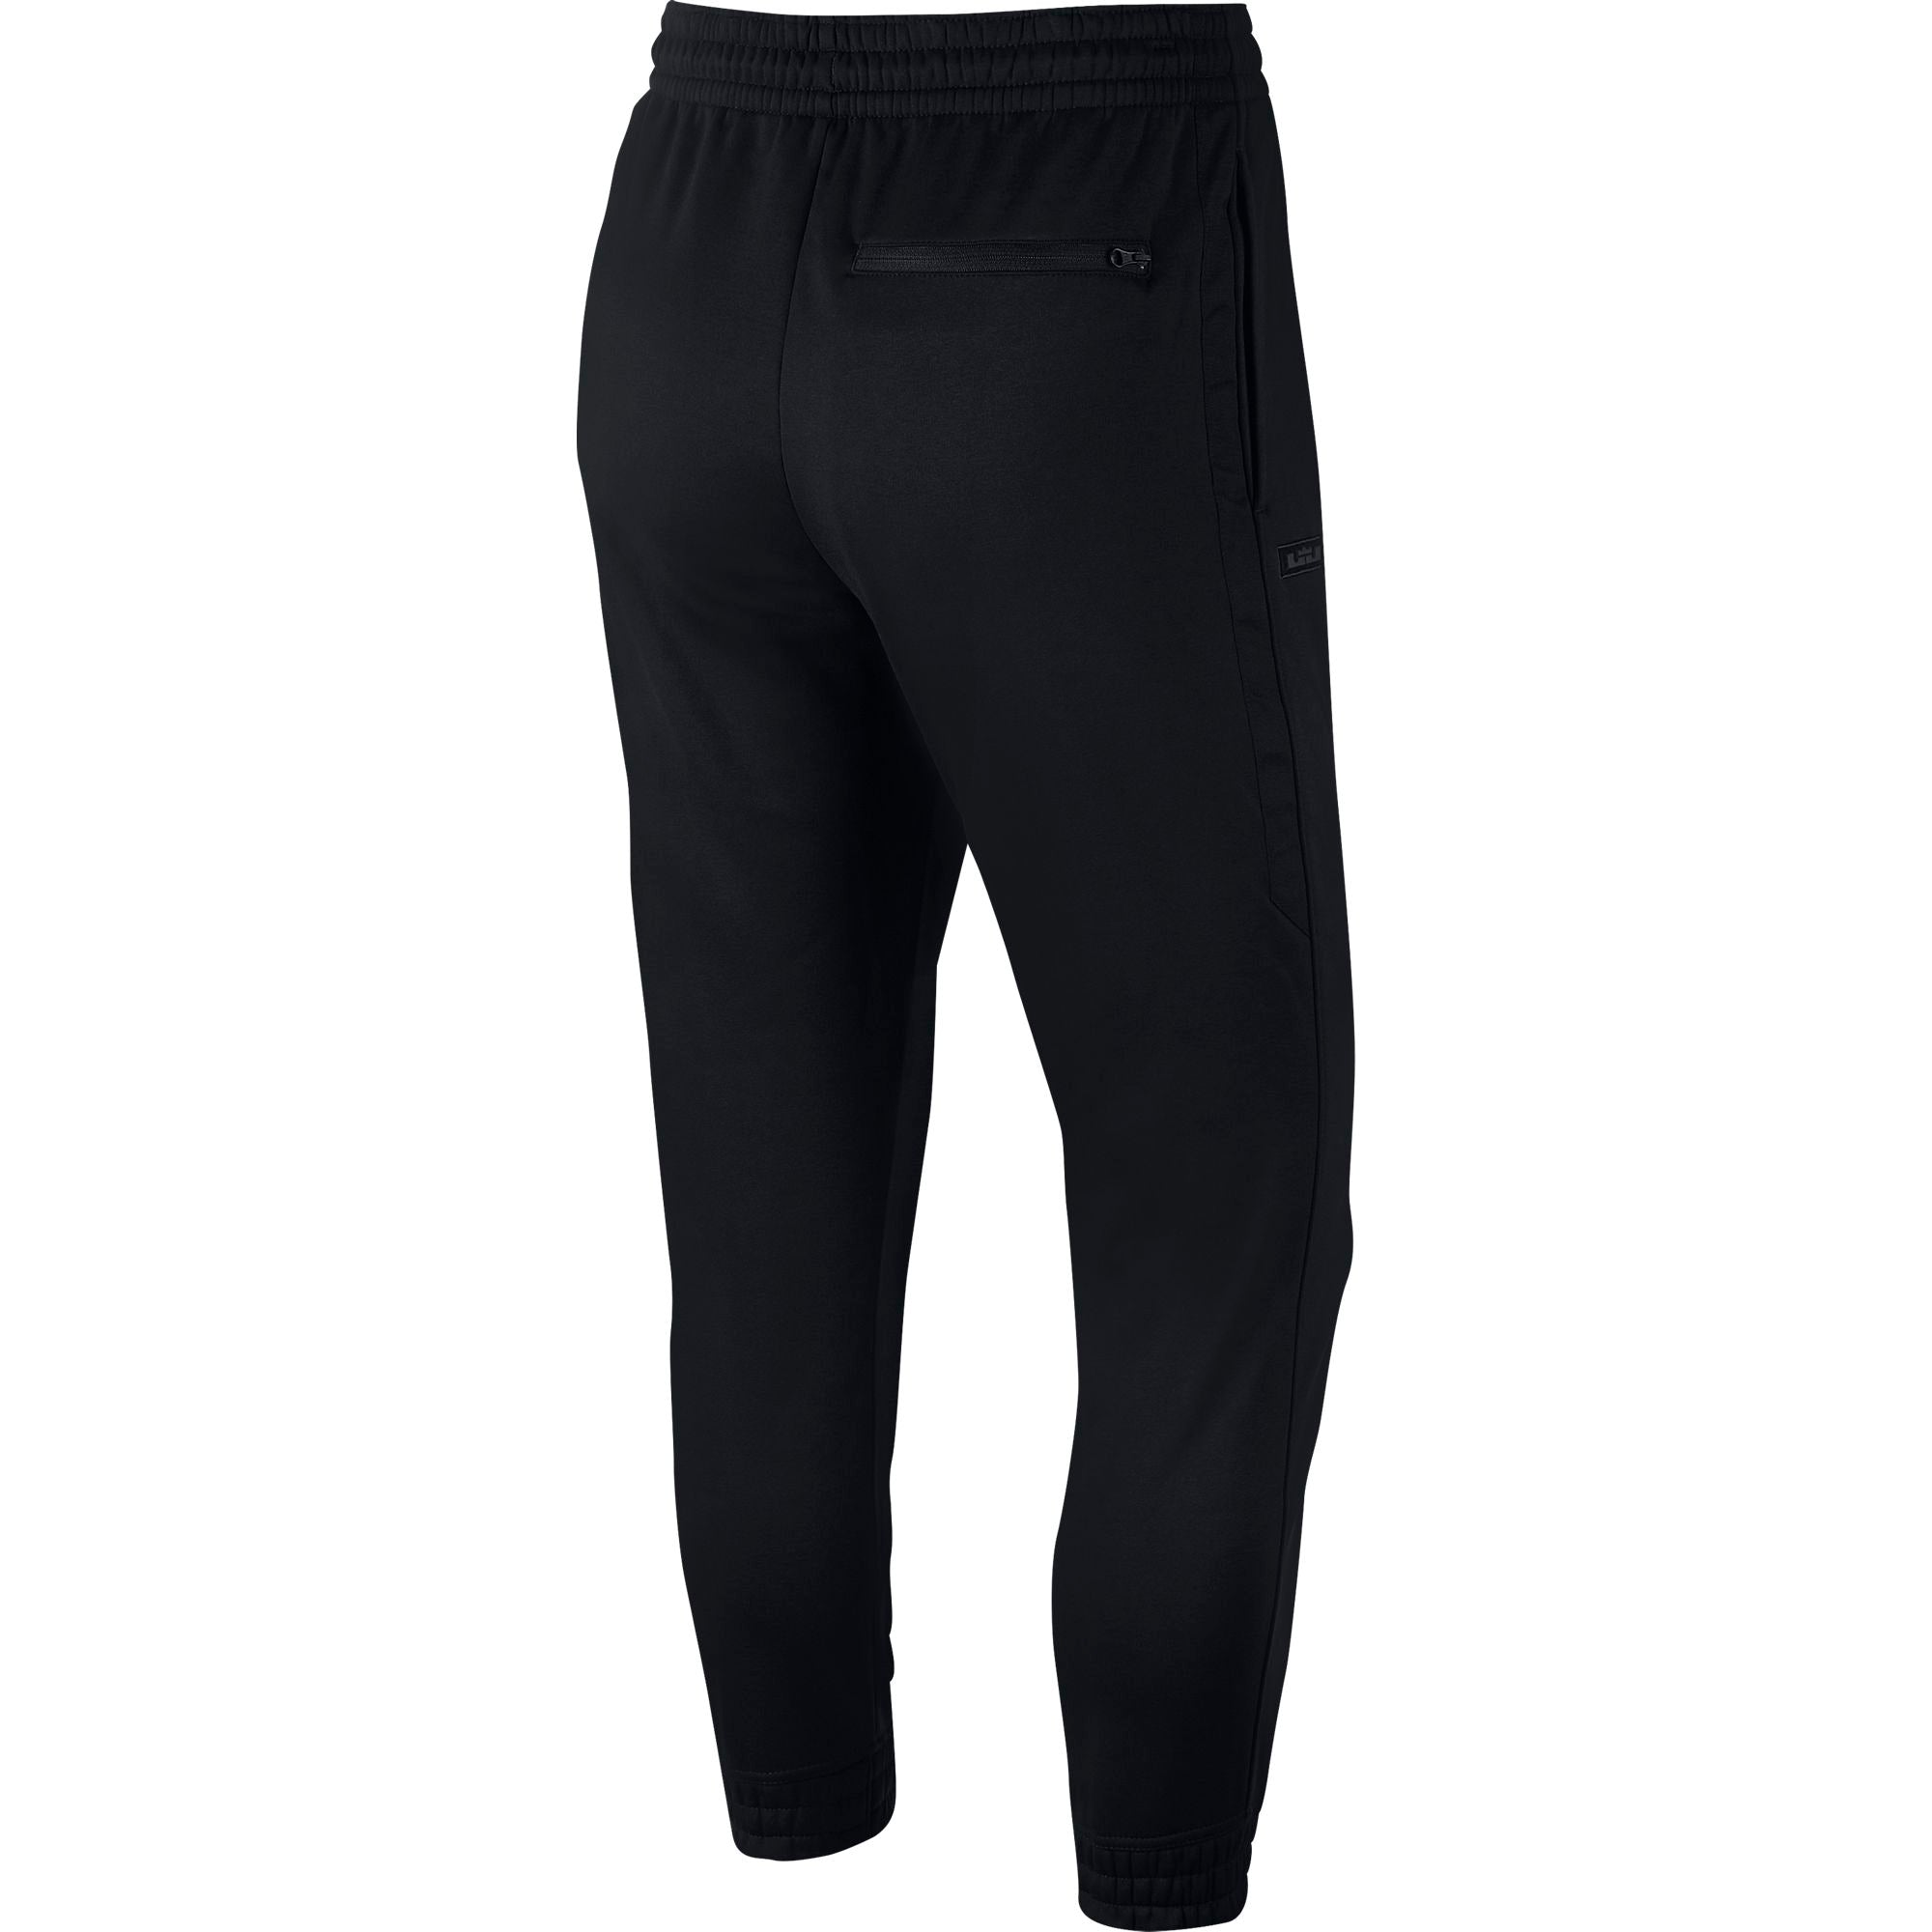 Nike Lebron Performance Fleece Therma Tapered Basketball Pants - Black